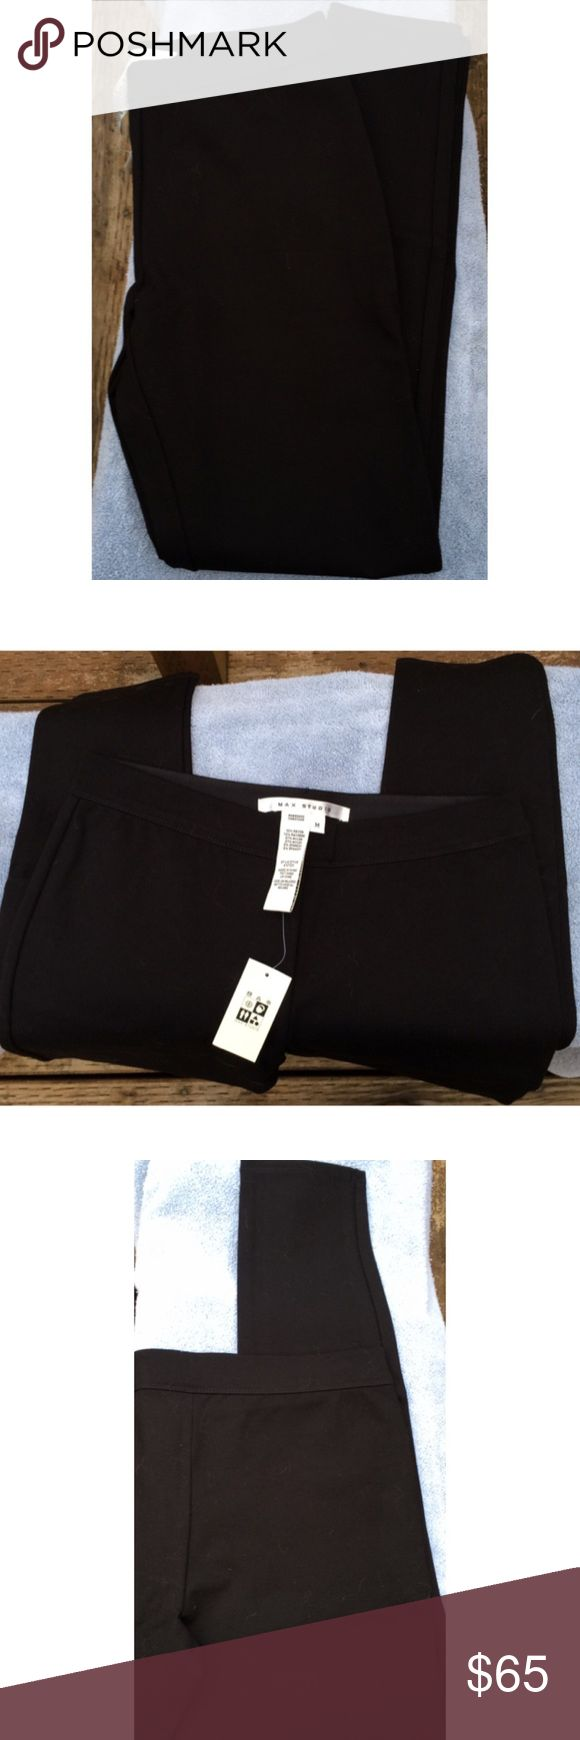 Max Studio Thick Black Leggings Not sure if I should call these tights, leggings or just pants...they are very thick with a sturdy elastic waste band. Little lint from towel its displayed on. Size medium. Rayon, nylon & spandex. 💯 Authentic (most receipts have been posted).  🚫No trades  ✅Only respectable offers made thru the OFFER tool accepted ❣️Please be kind as that's what you'll get in return ☮️Thanks for the opportunity to share my goods w/ u Max Studio Pants